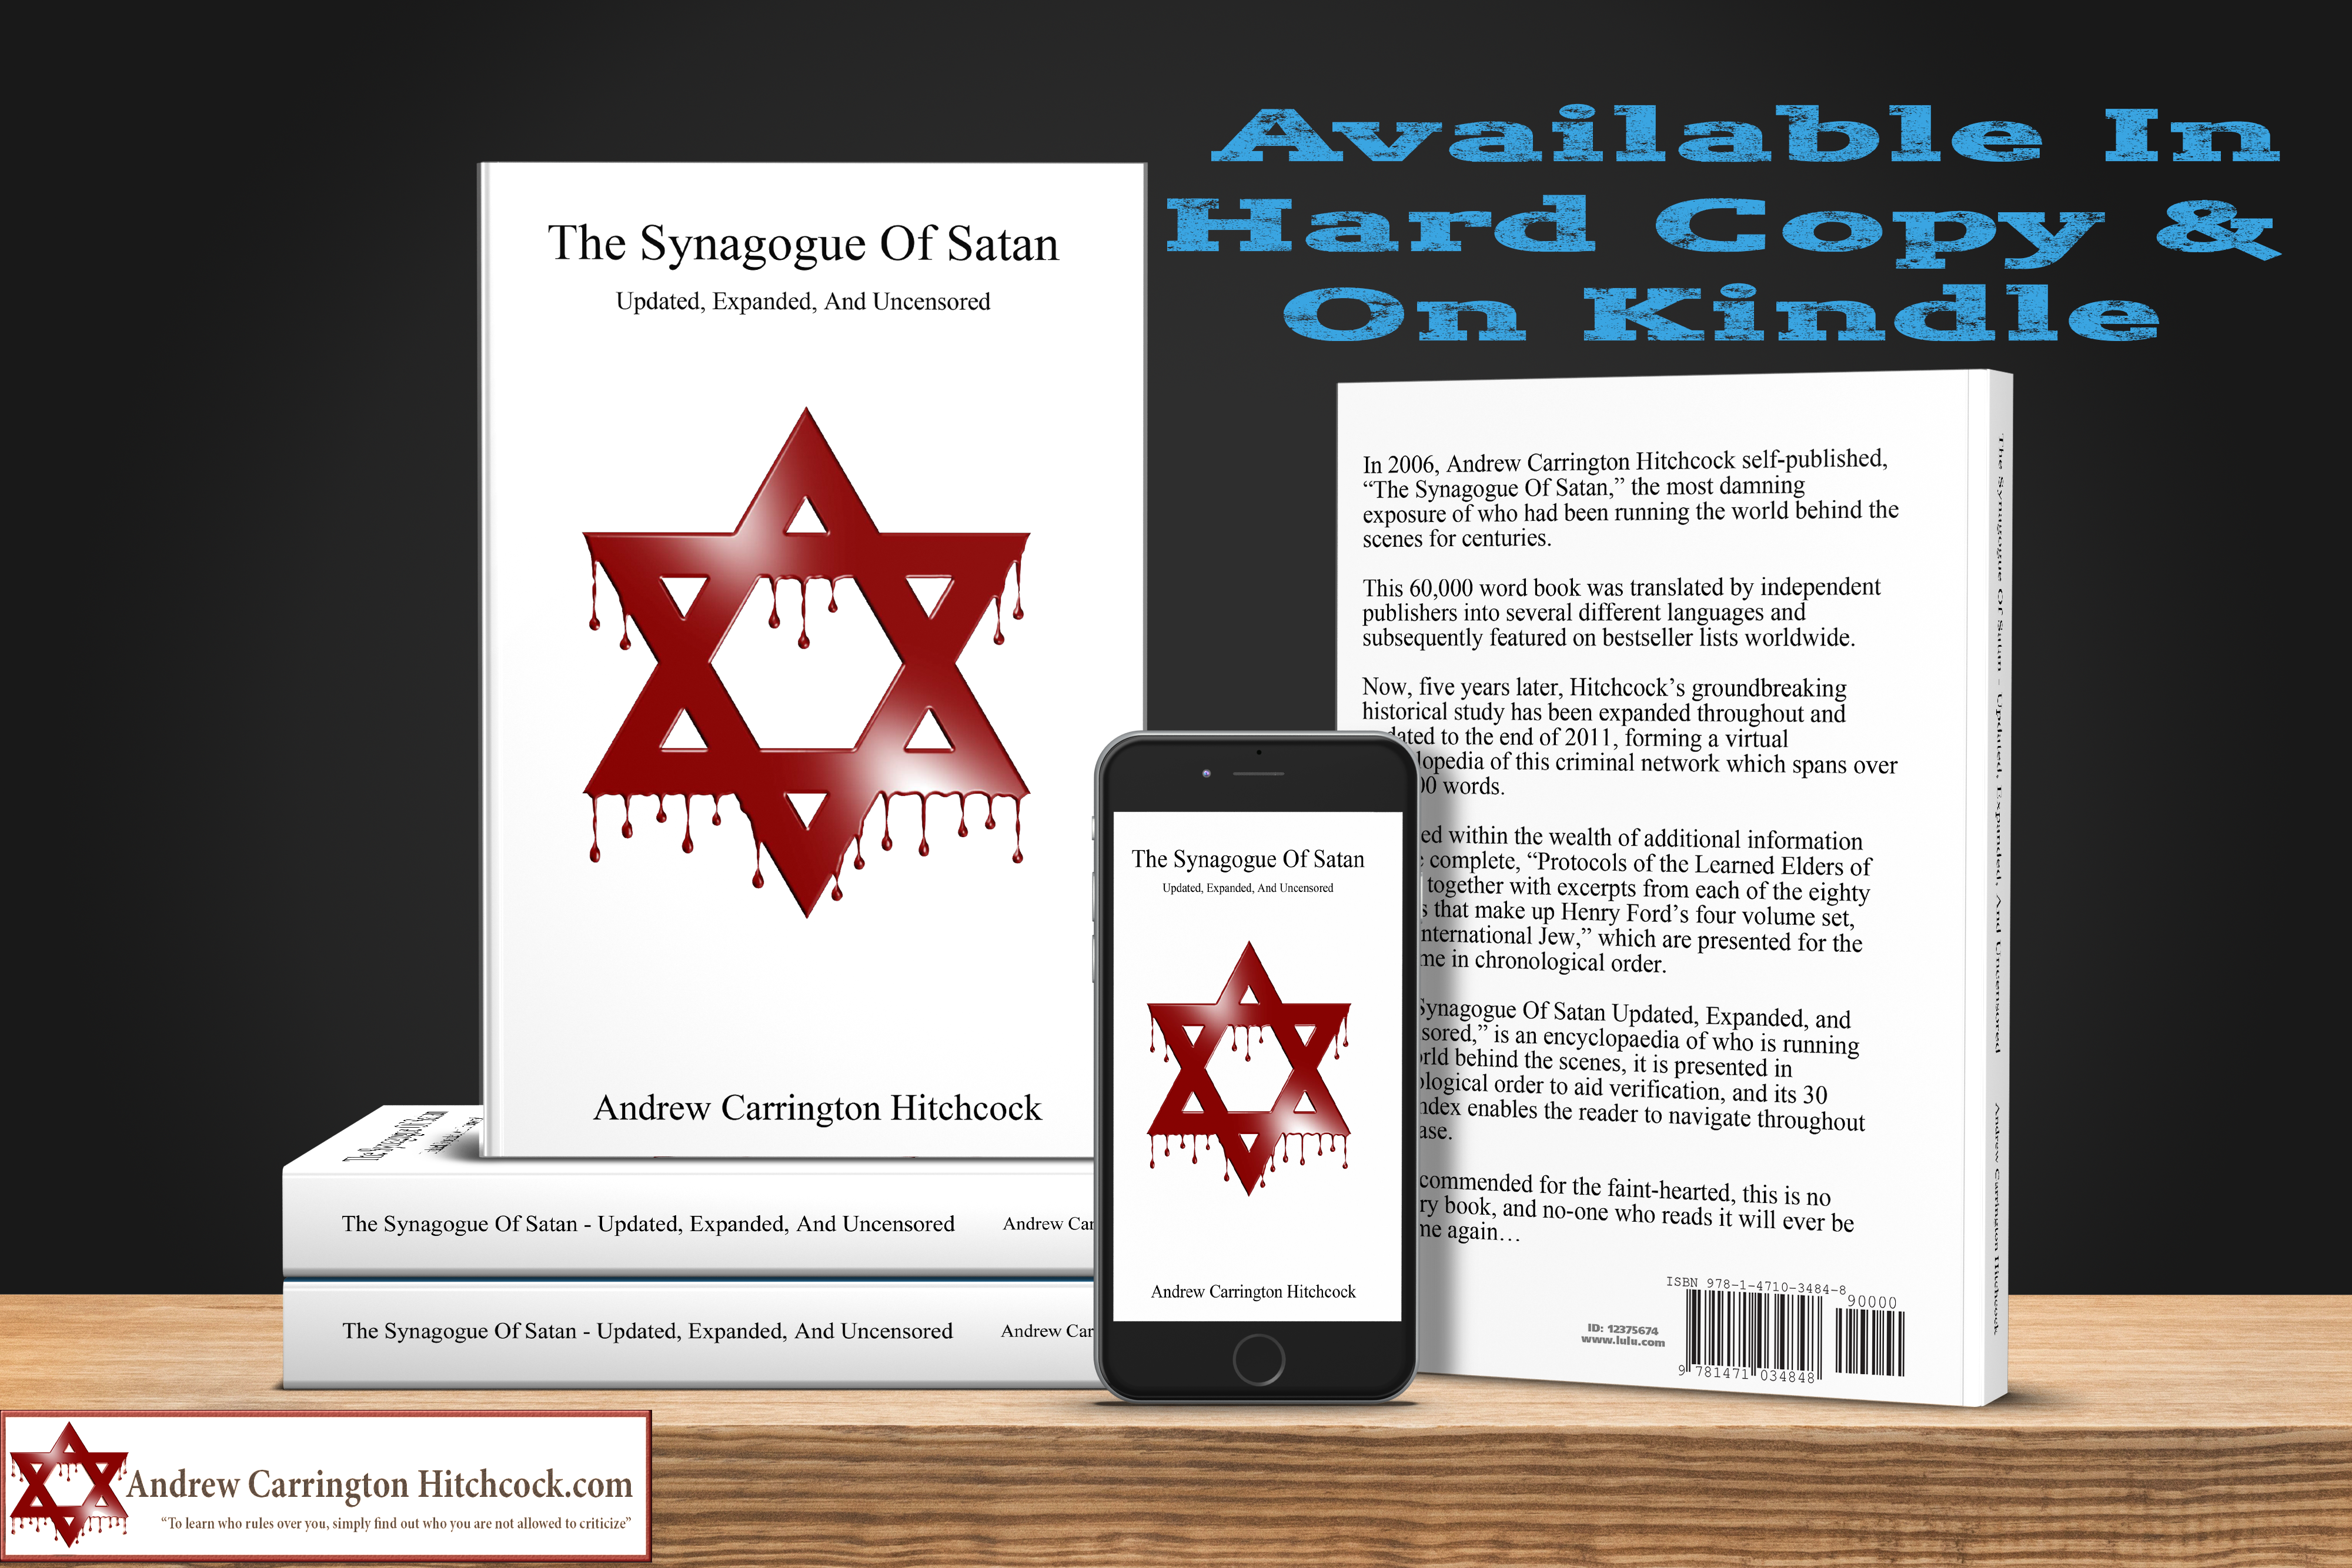 The Andrew Carrington Hitchcock Show (283) The Synagogue Of Satan Updated, Expanded, And Uncensored – Part 8 (1920 – The International Jew – Part 2)